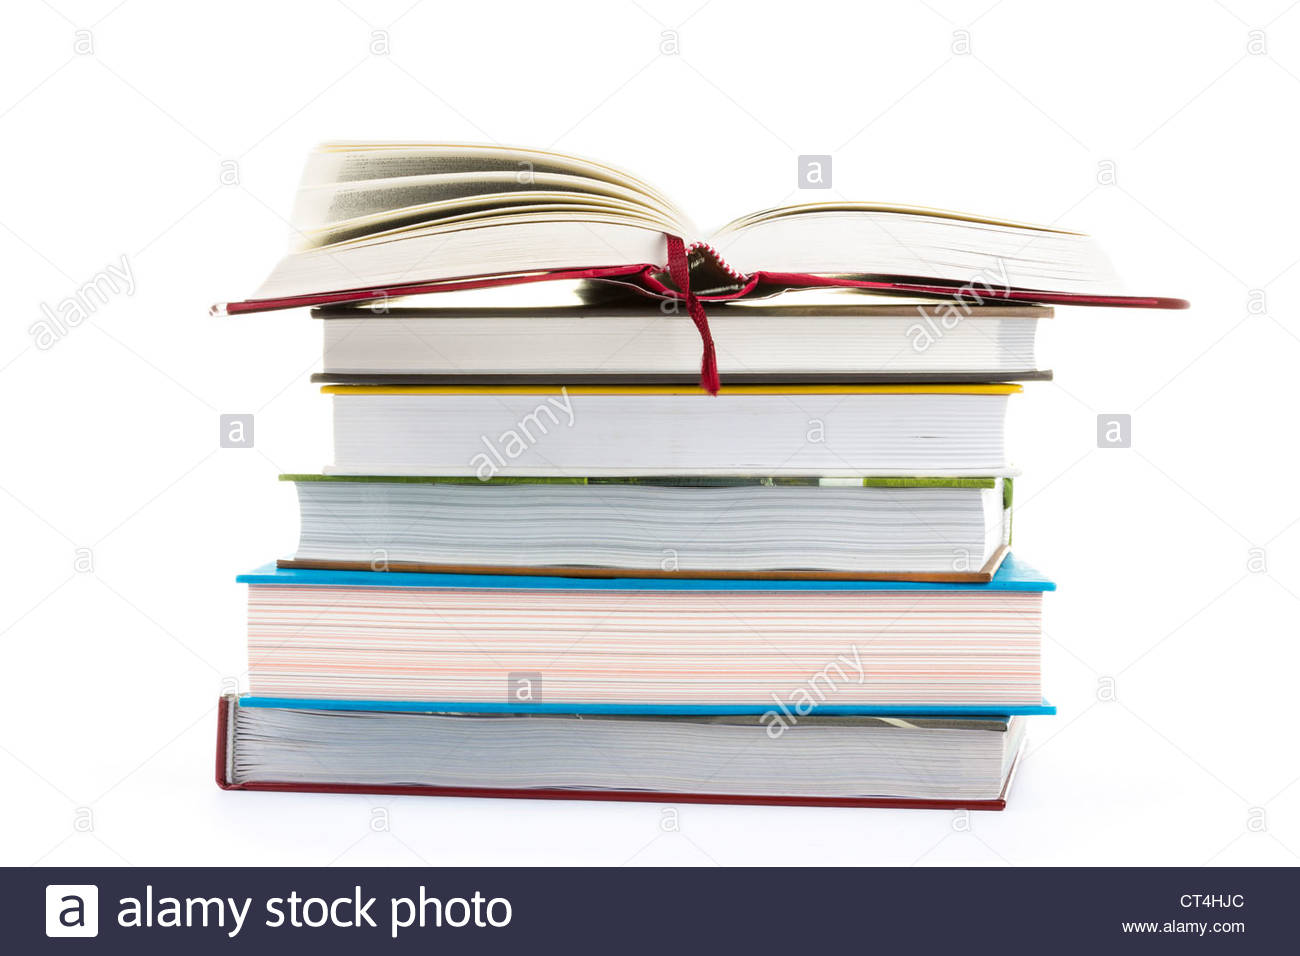 Stack of books on white background - Stock Image